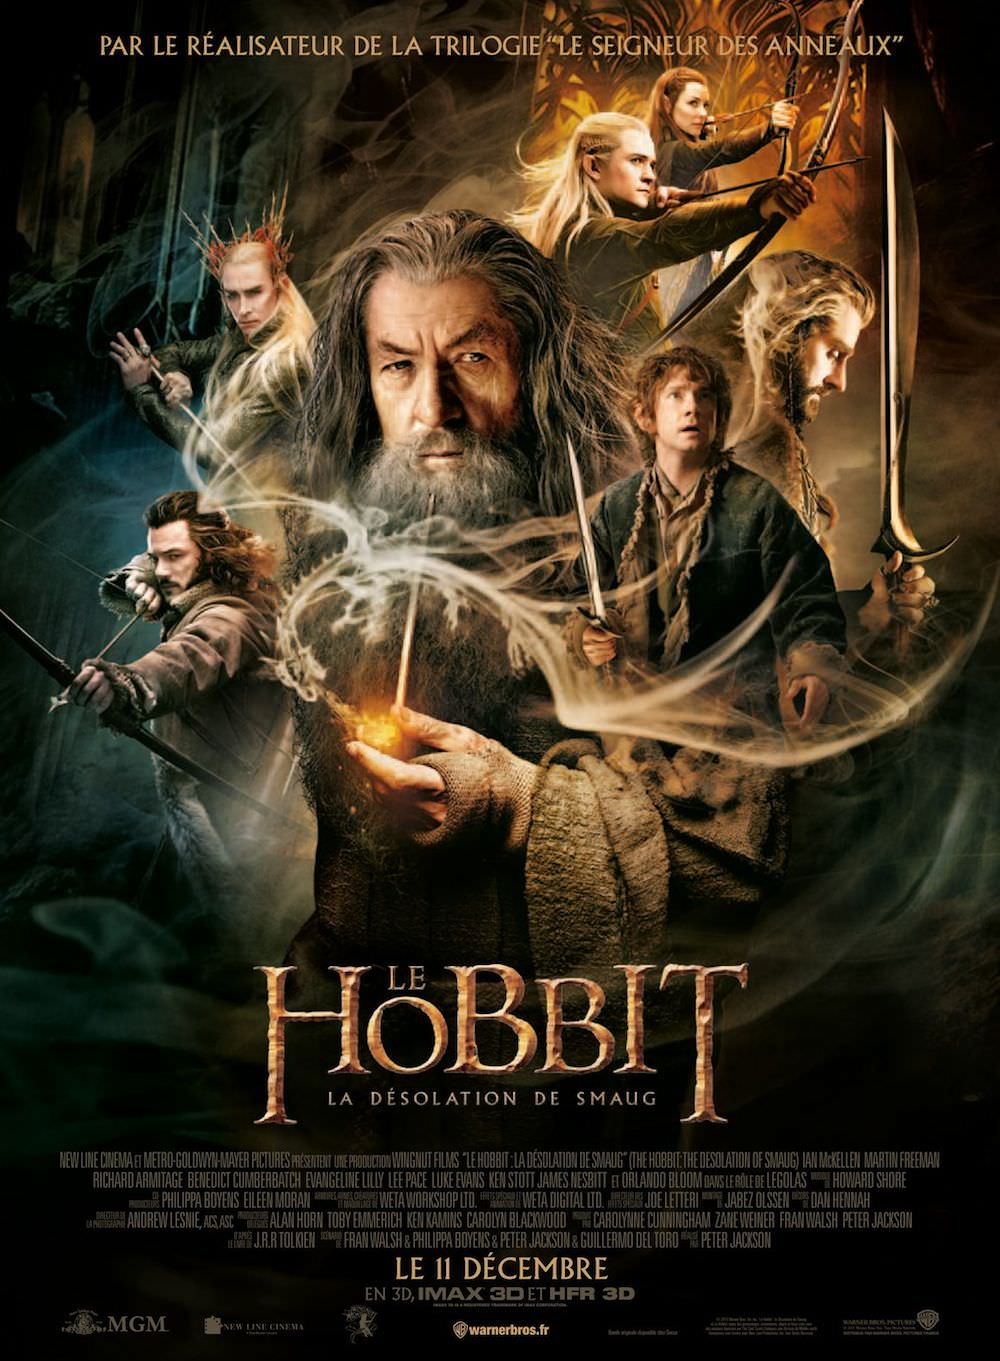 Le hobbit la desolation de smaug peter jackson